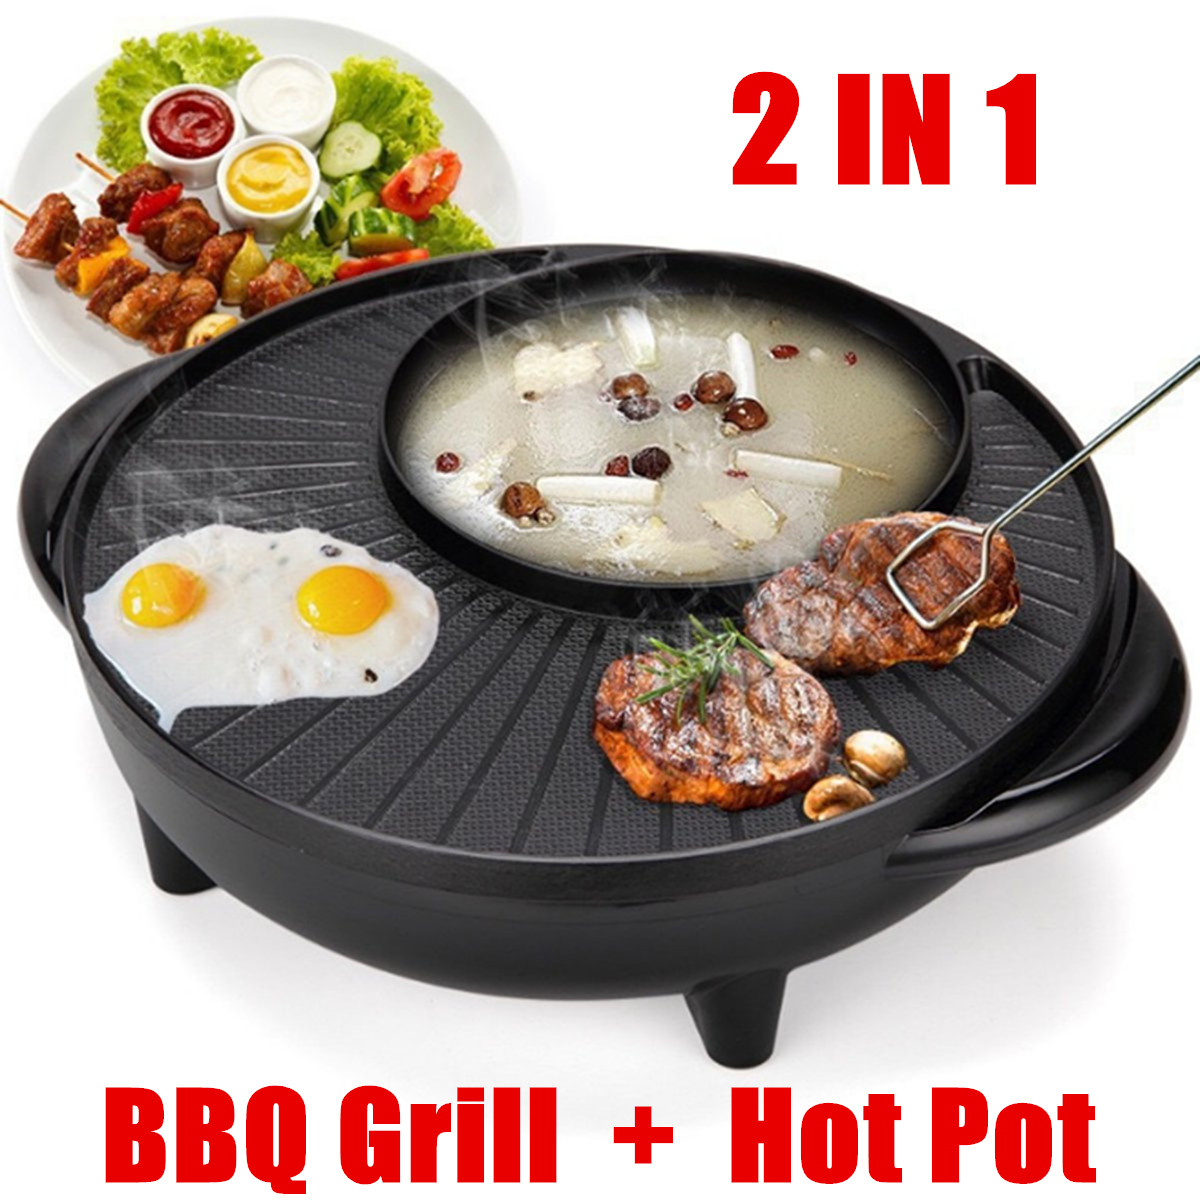 1350W 220V Multifunctional Electric BBQ Grill Non Stick Plate Barbecue Pan Hot Pot Dinner Party Picnic Skillet Maker 2-8 People